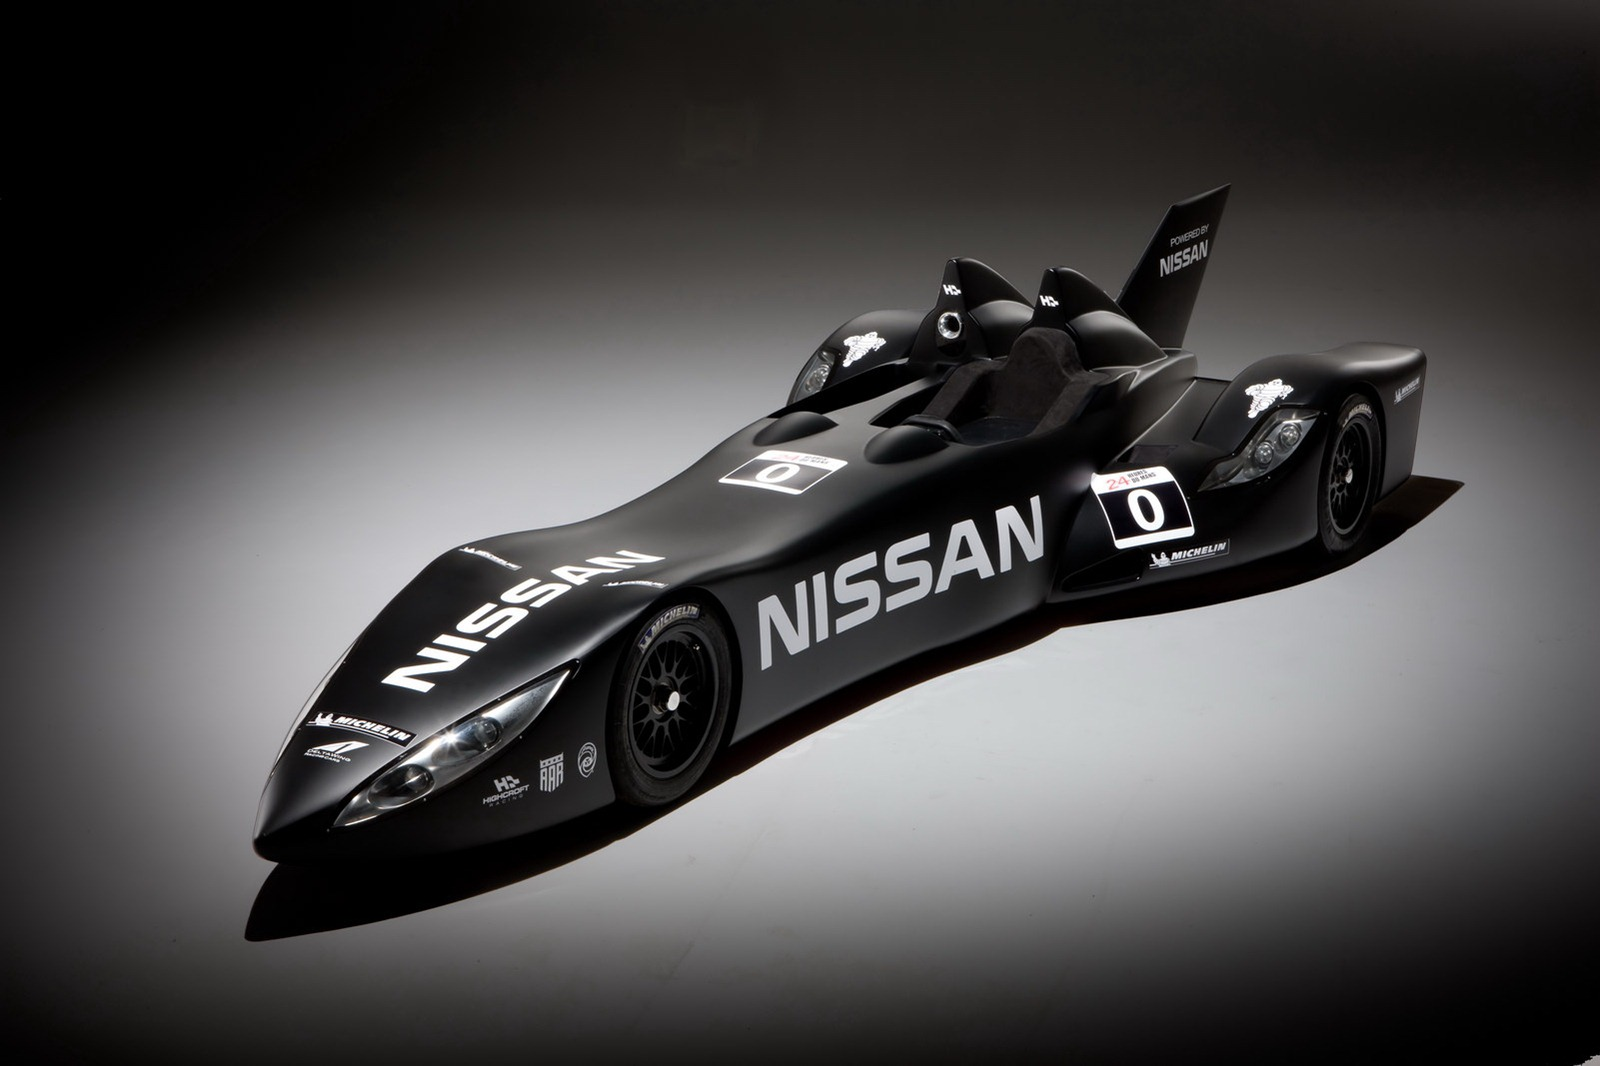 The Nissan DeltaWing